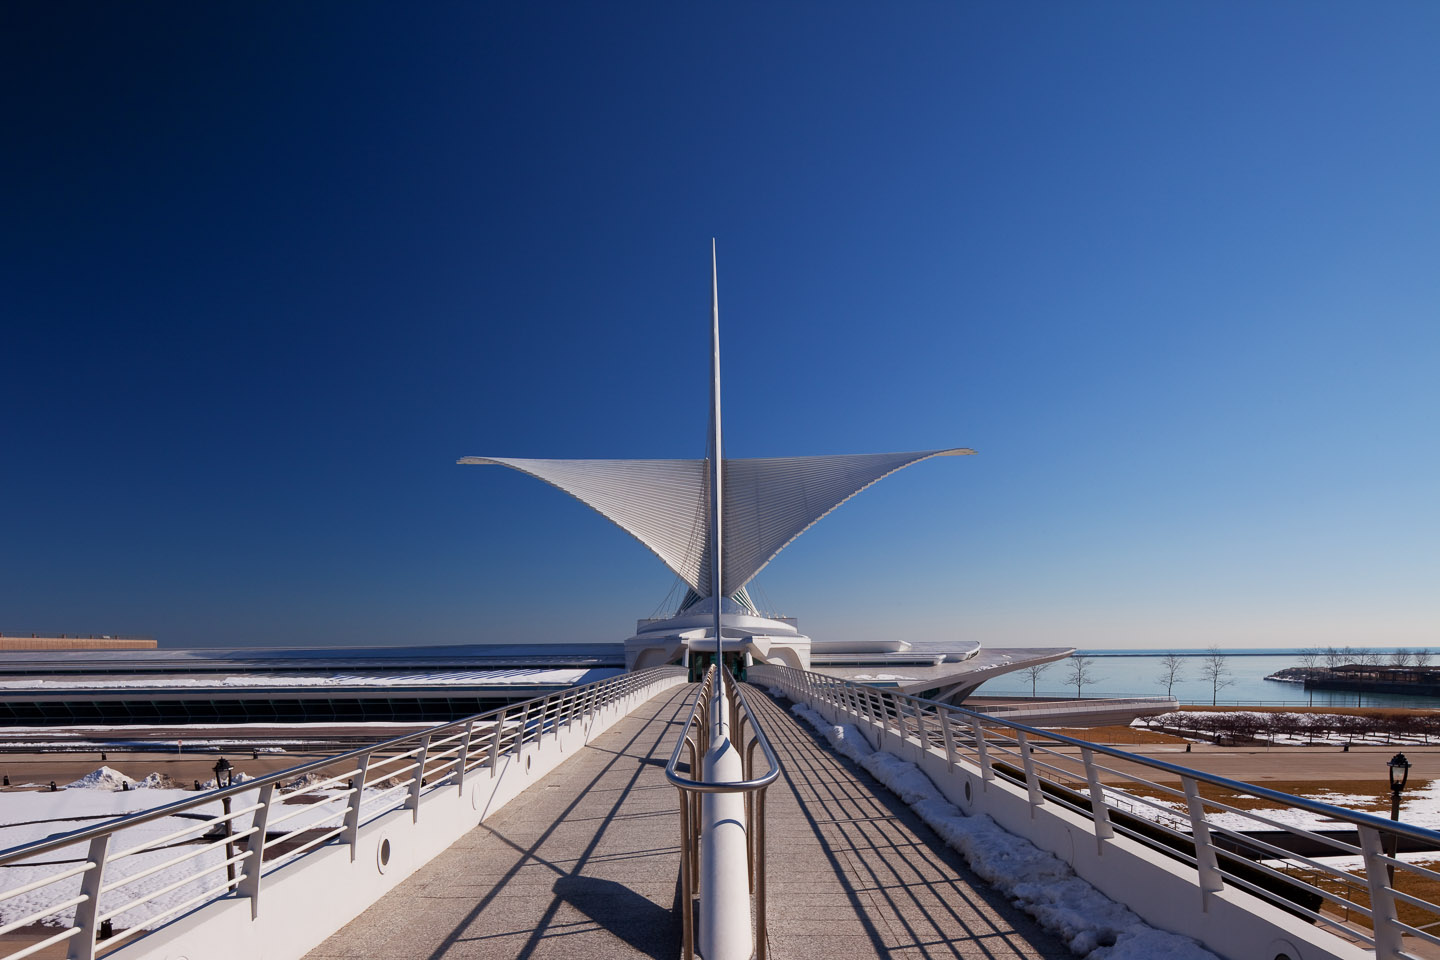 the exterior public entrance bridge for the Milwaukee Art Museum, designed by Santiago Calatrava, photographed by Jacob Rosenfeld